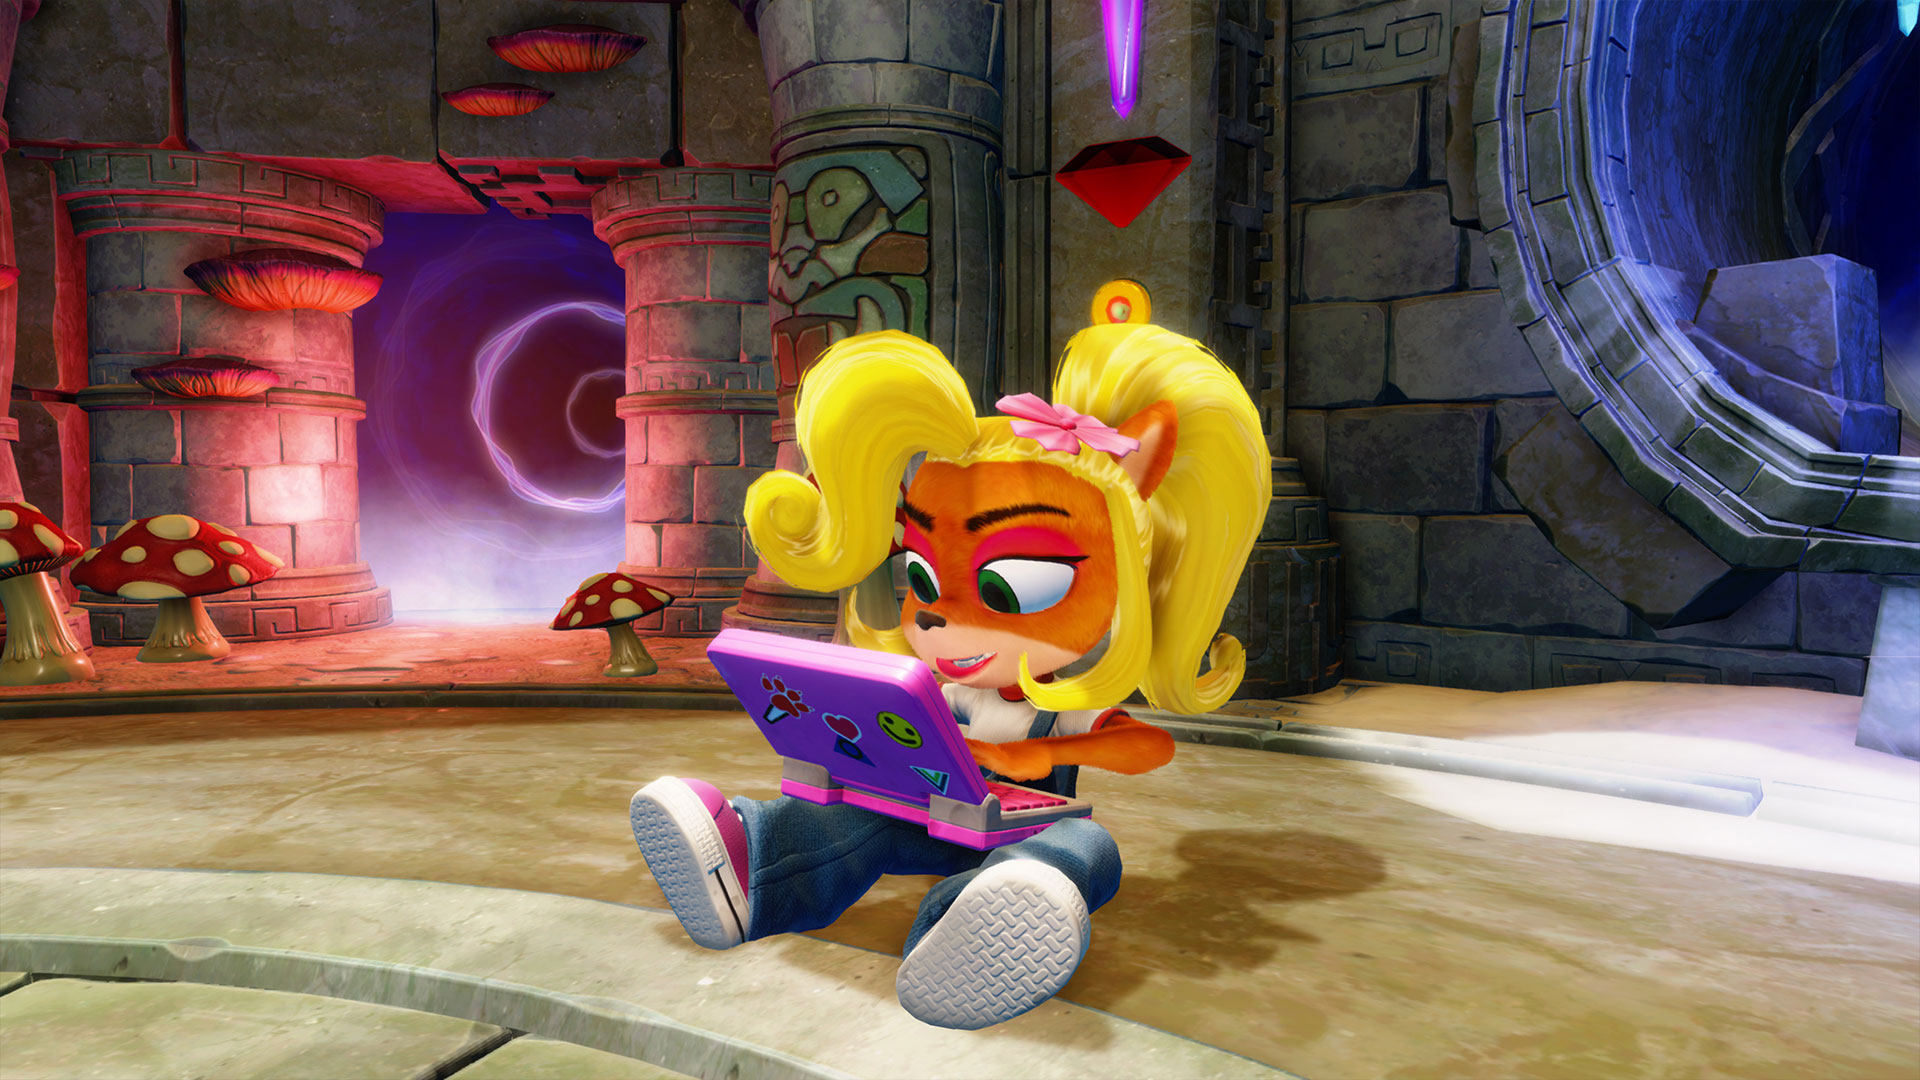 Activision Wants to Bring More Game Remasters after Crash Bandicoot Trilogy Success